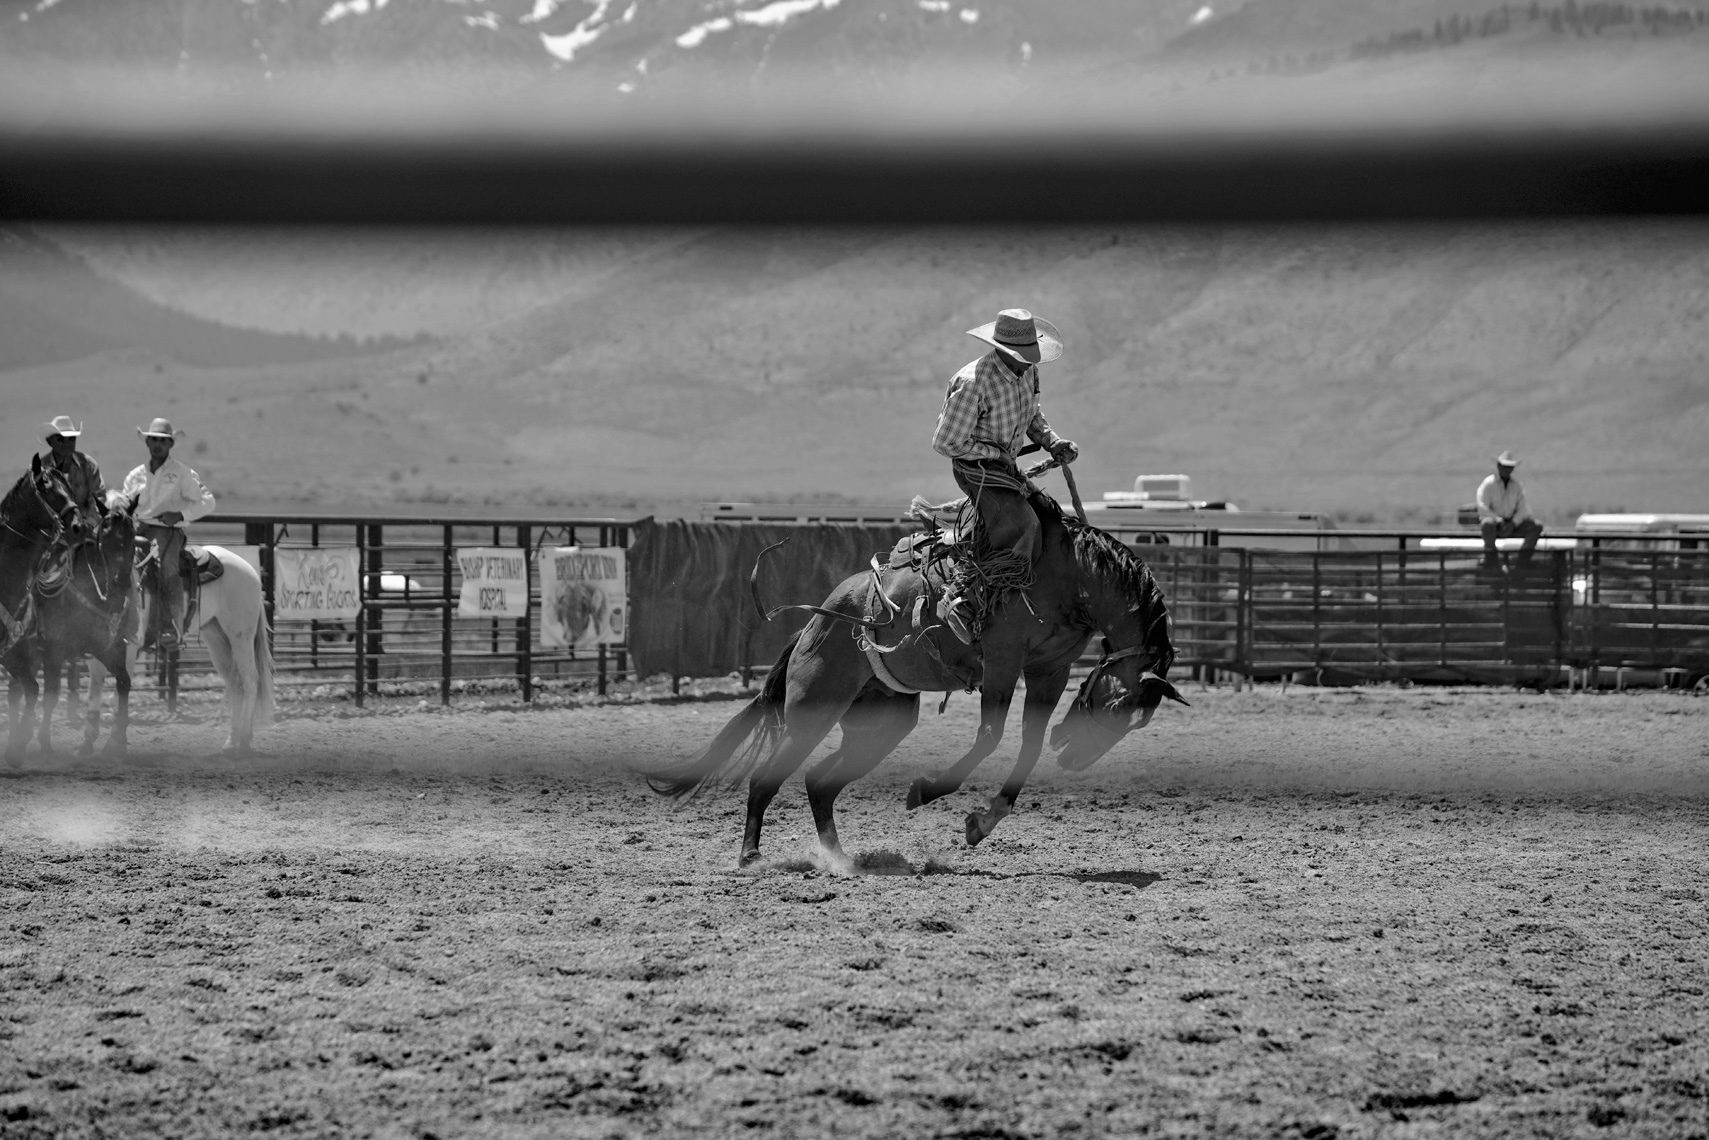 Roadtripping_BridgeportRodeo_ClassicForm_BroncRider06_Action_Personal_Retouched_Web